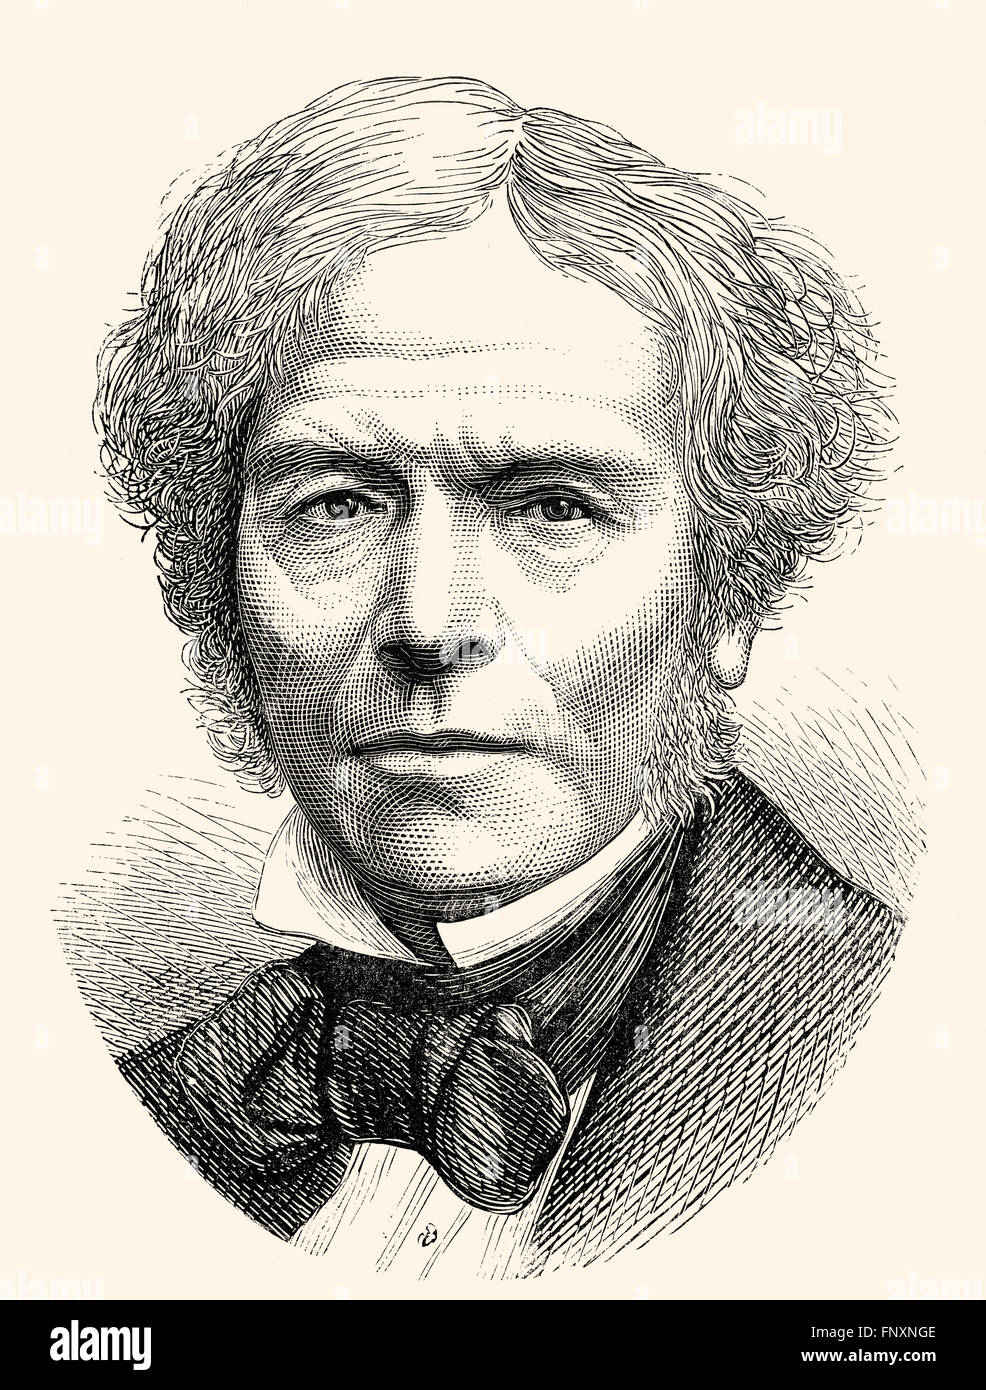 Michael Faraday, 1791 - 1867, an English scientist - Stock Image